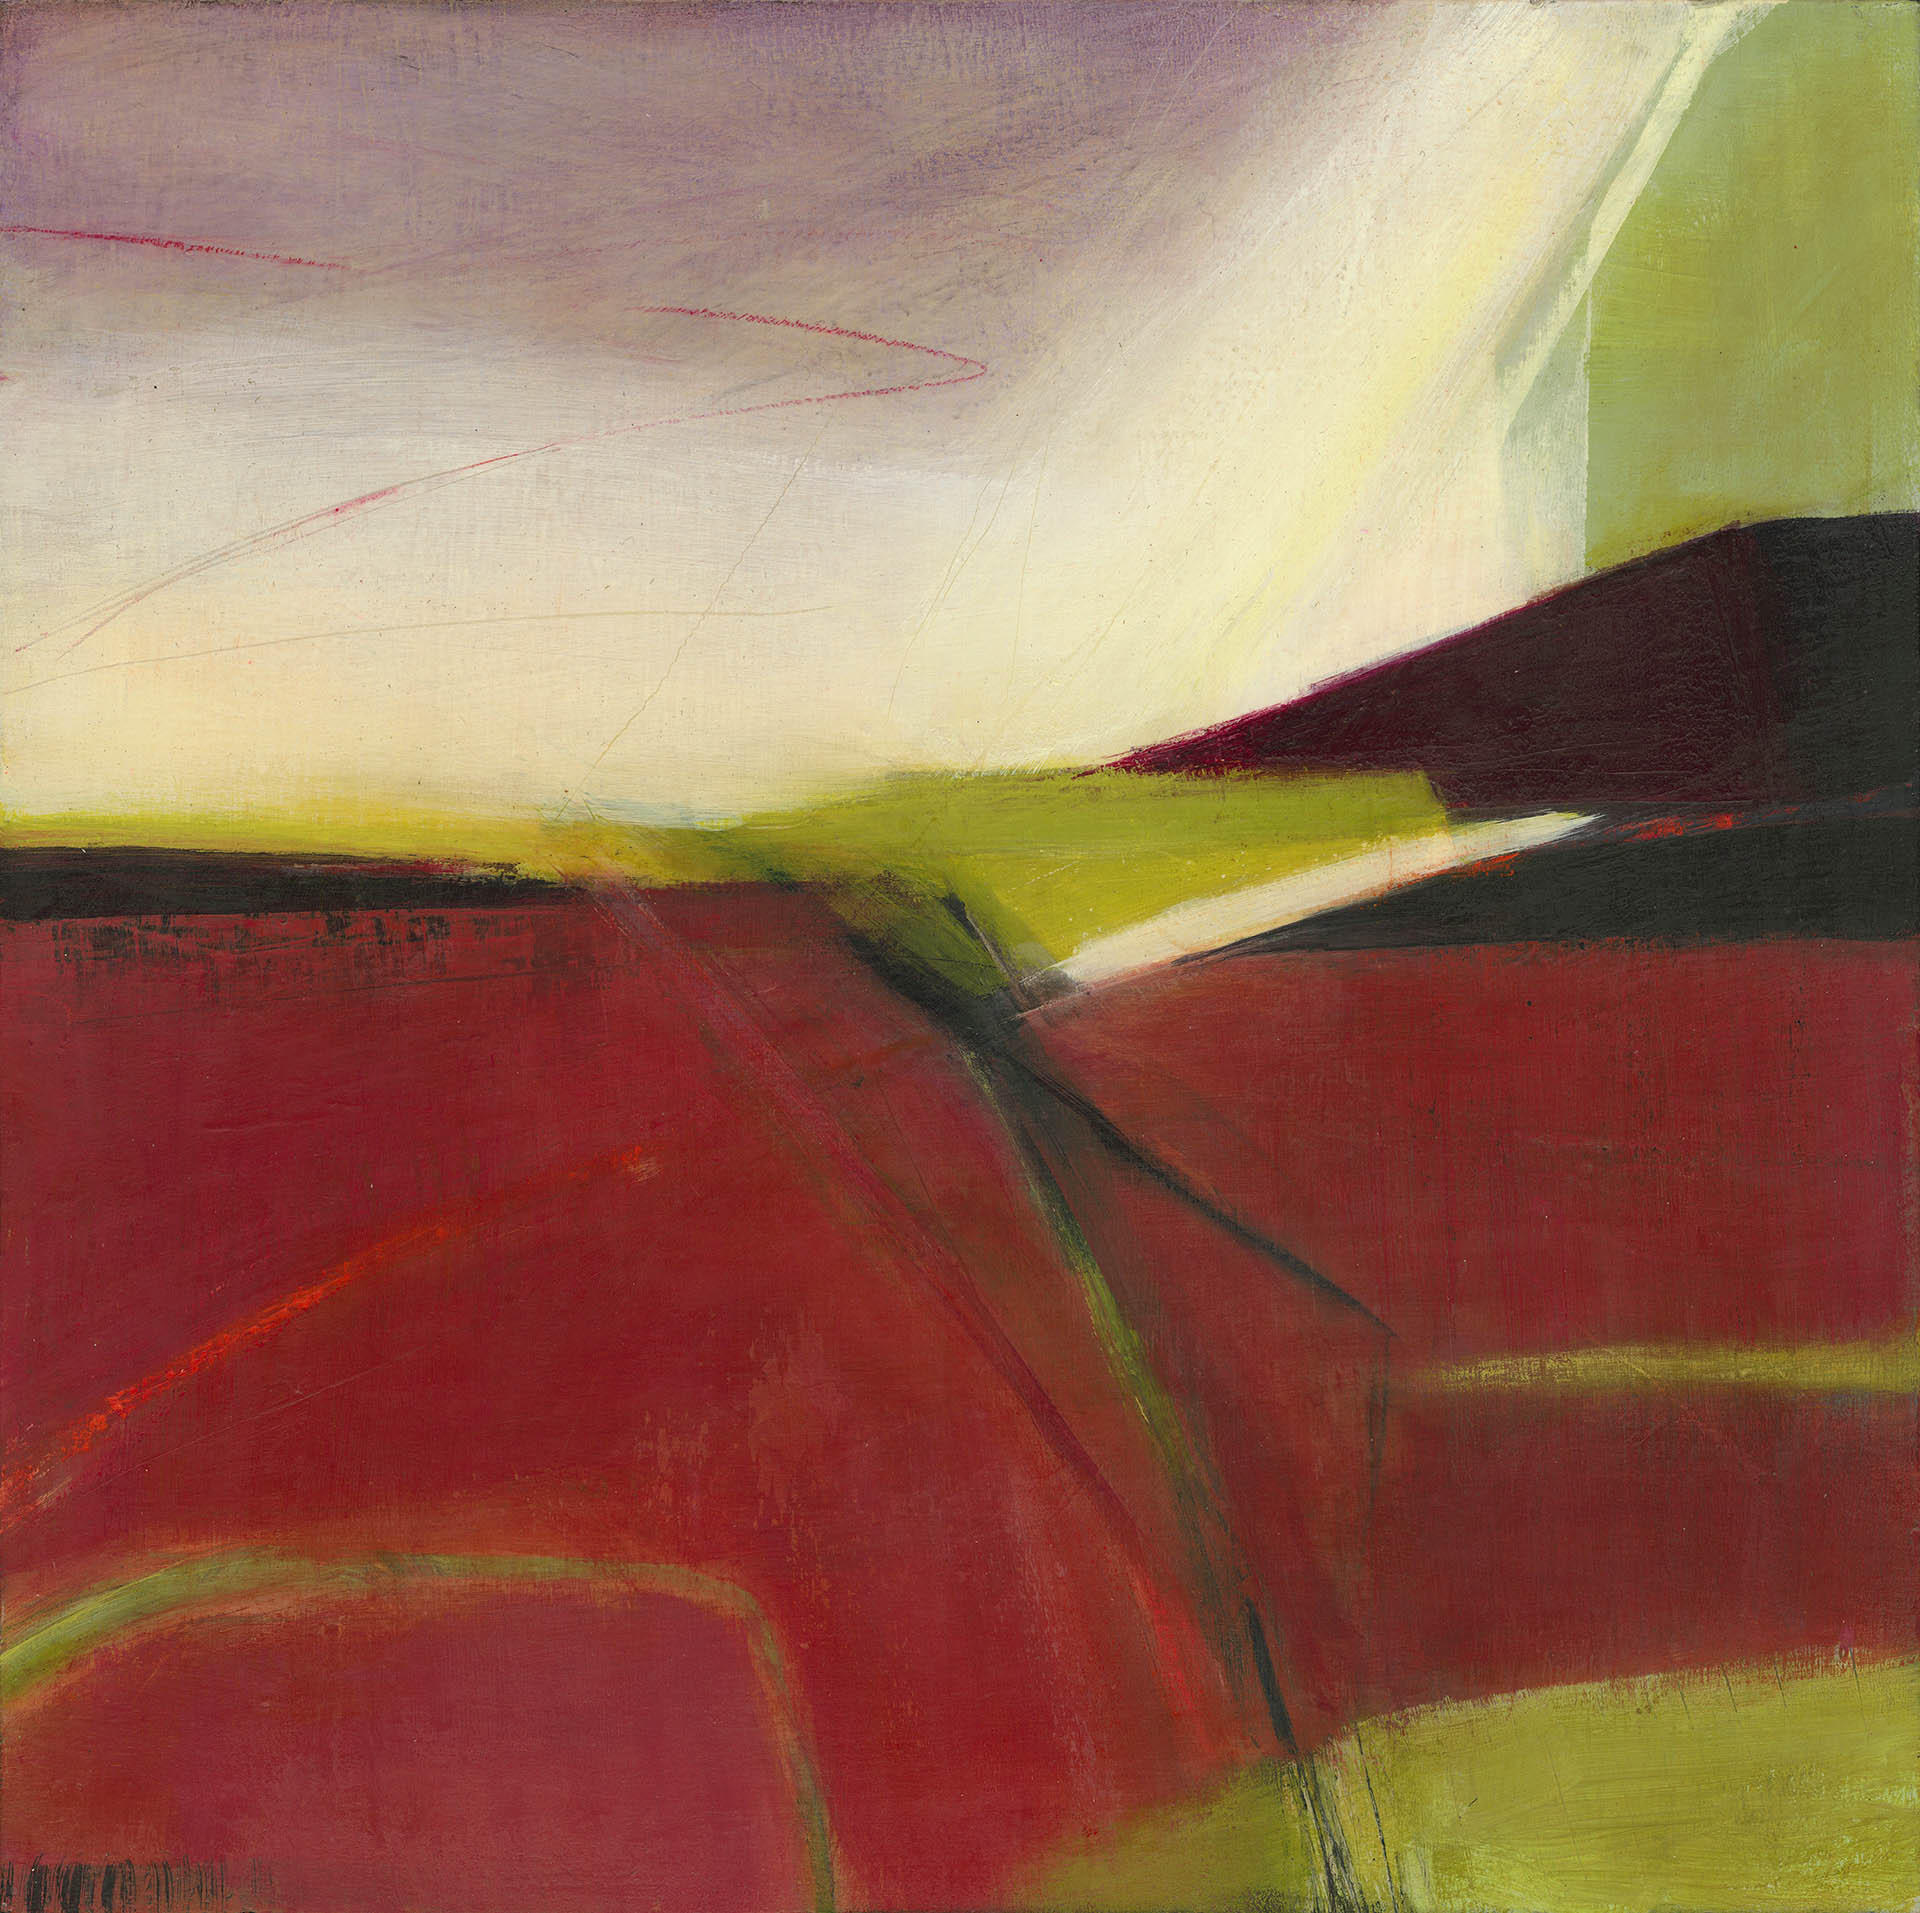 Red and green painting with strong geometric shapes and a soft violet sky.